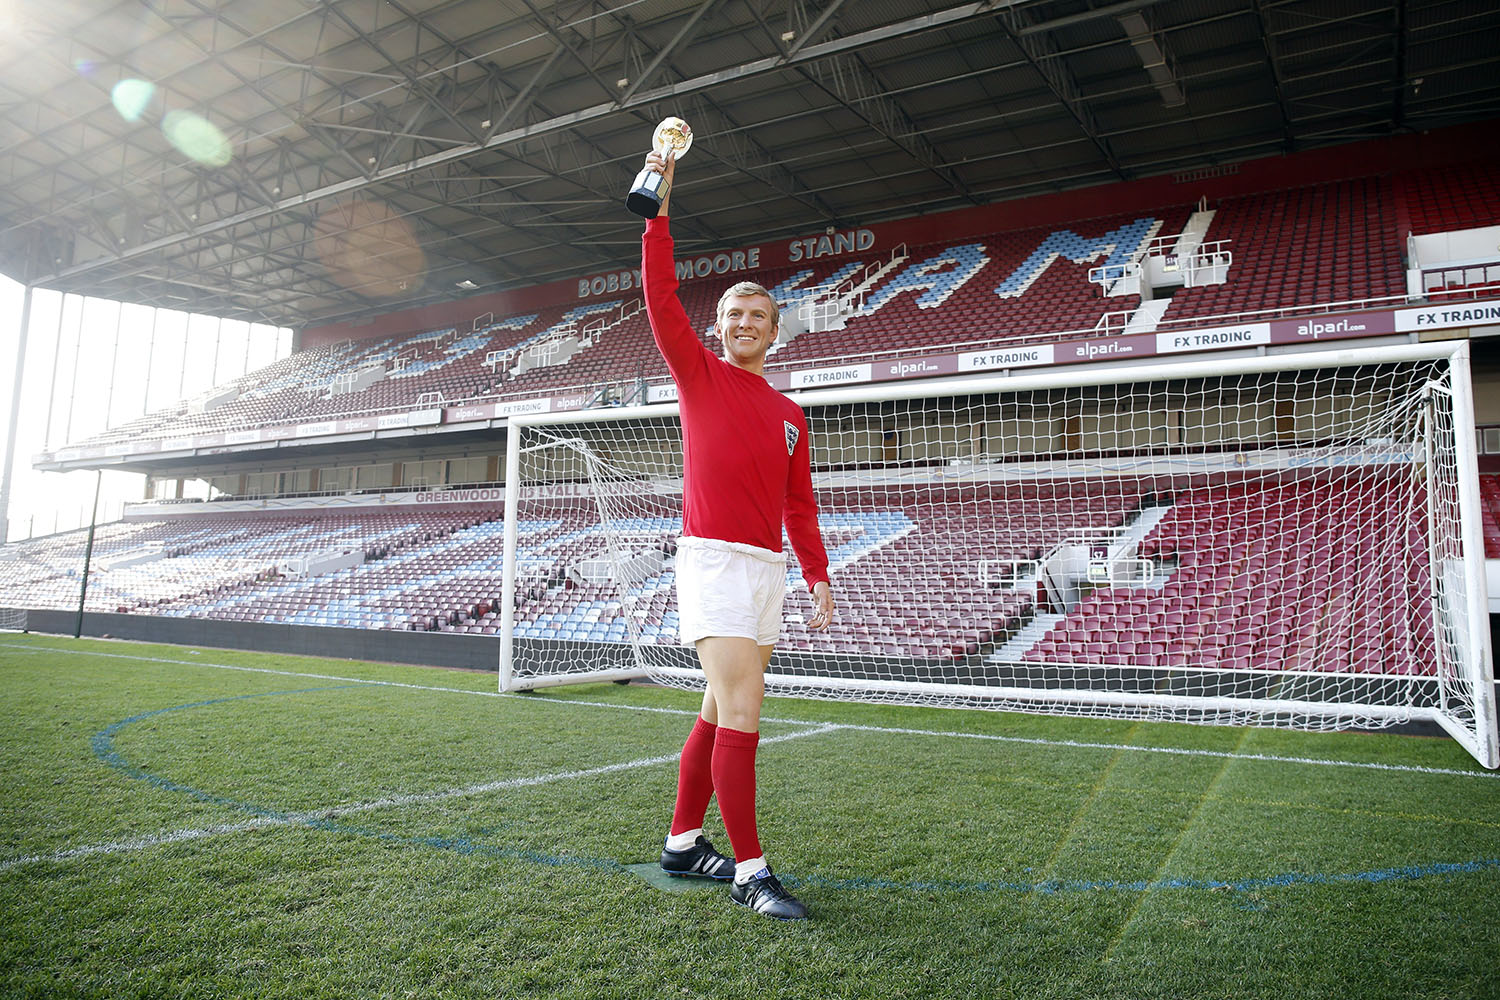 Madame Tussauds unveils a new wax figure of 1966 England Captain, Bobby Moore at West Ham United's Boelyn Ground in London, on May 19, 2014.